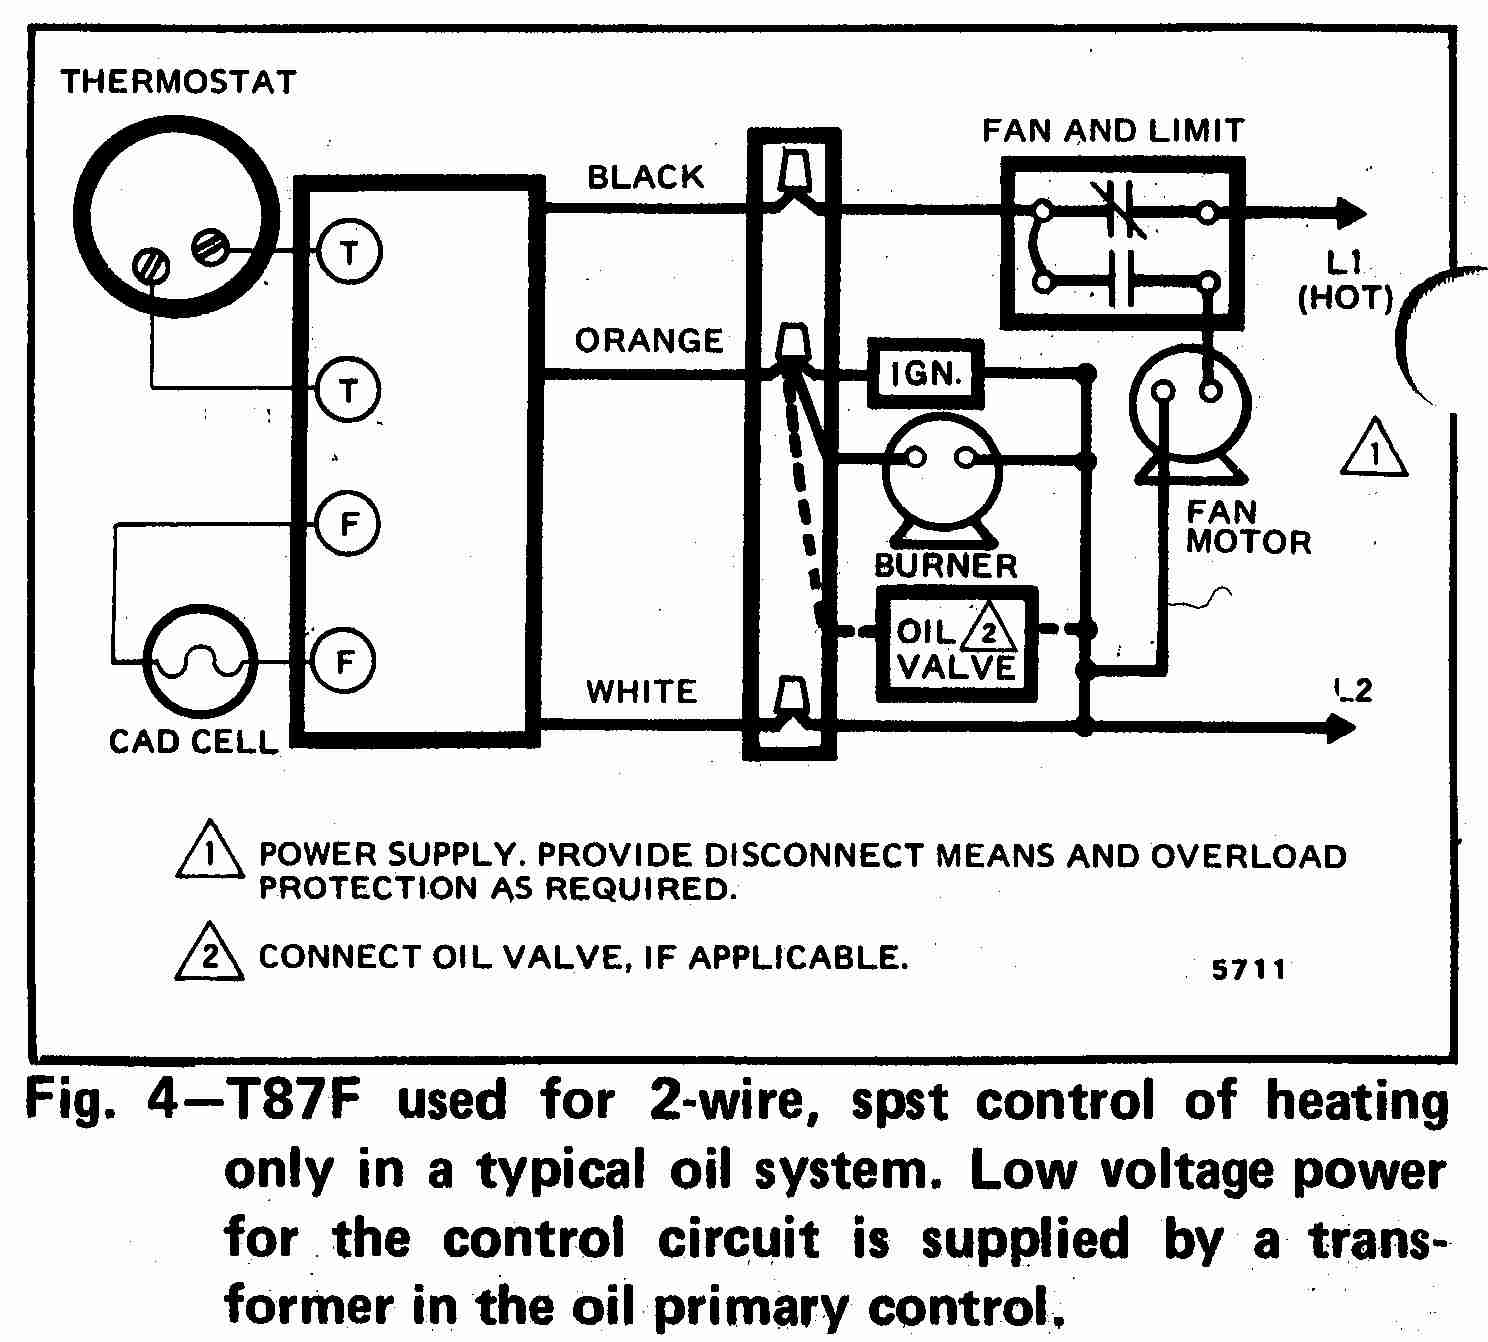 TT_T87F_0002_2W_DJF room thermostat wiring diagrams for hvac systems wiring diagram thermostat at mr168.co